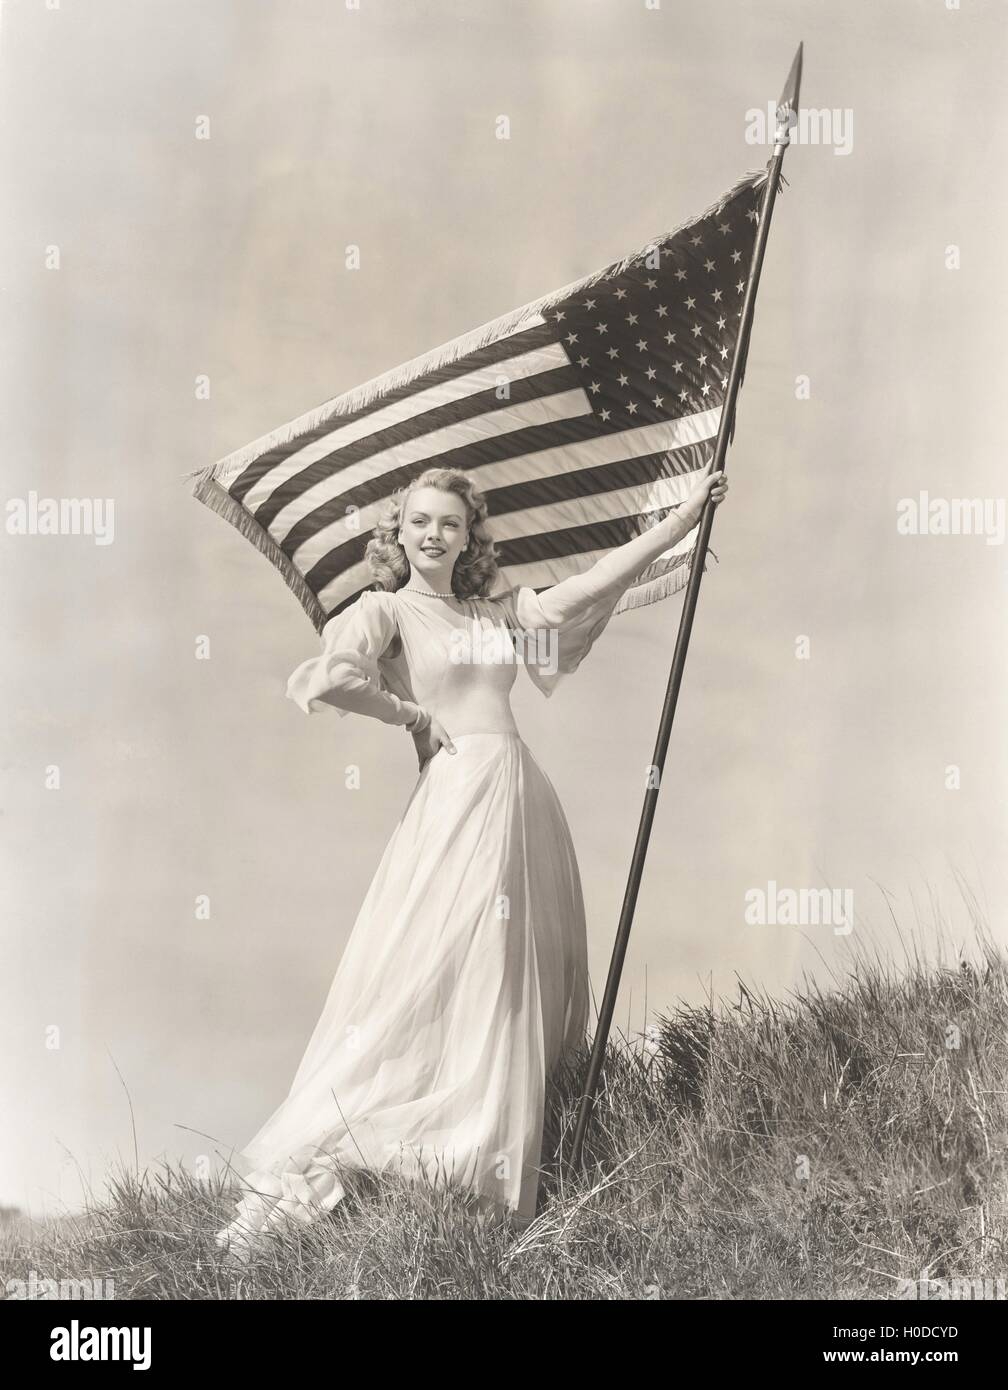 Proud woman in gown holding American flag on hill - Stock Image